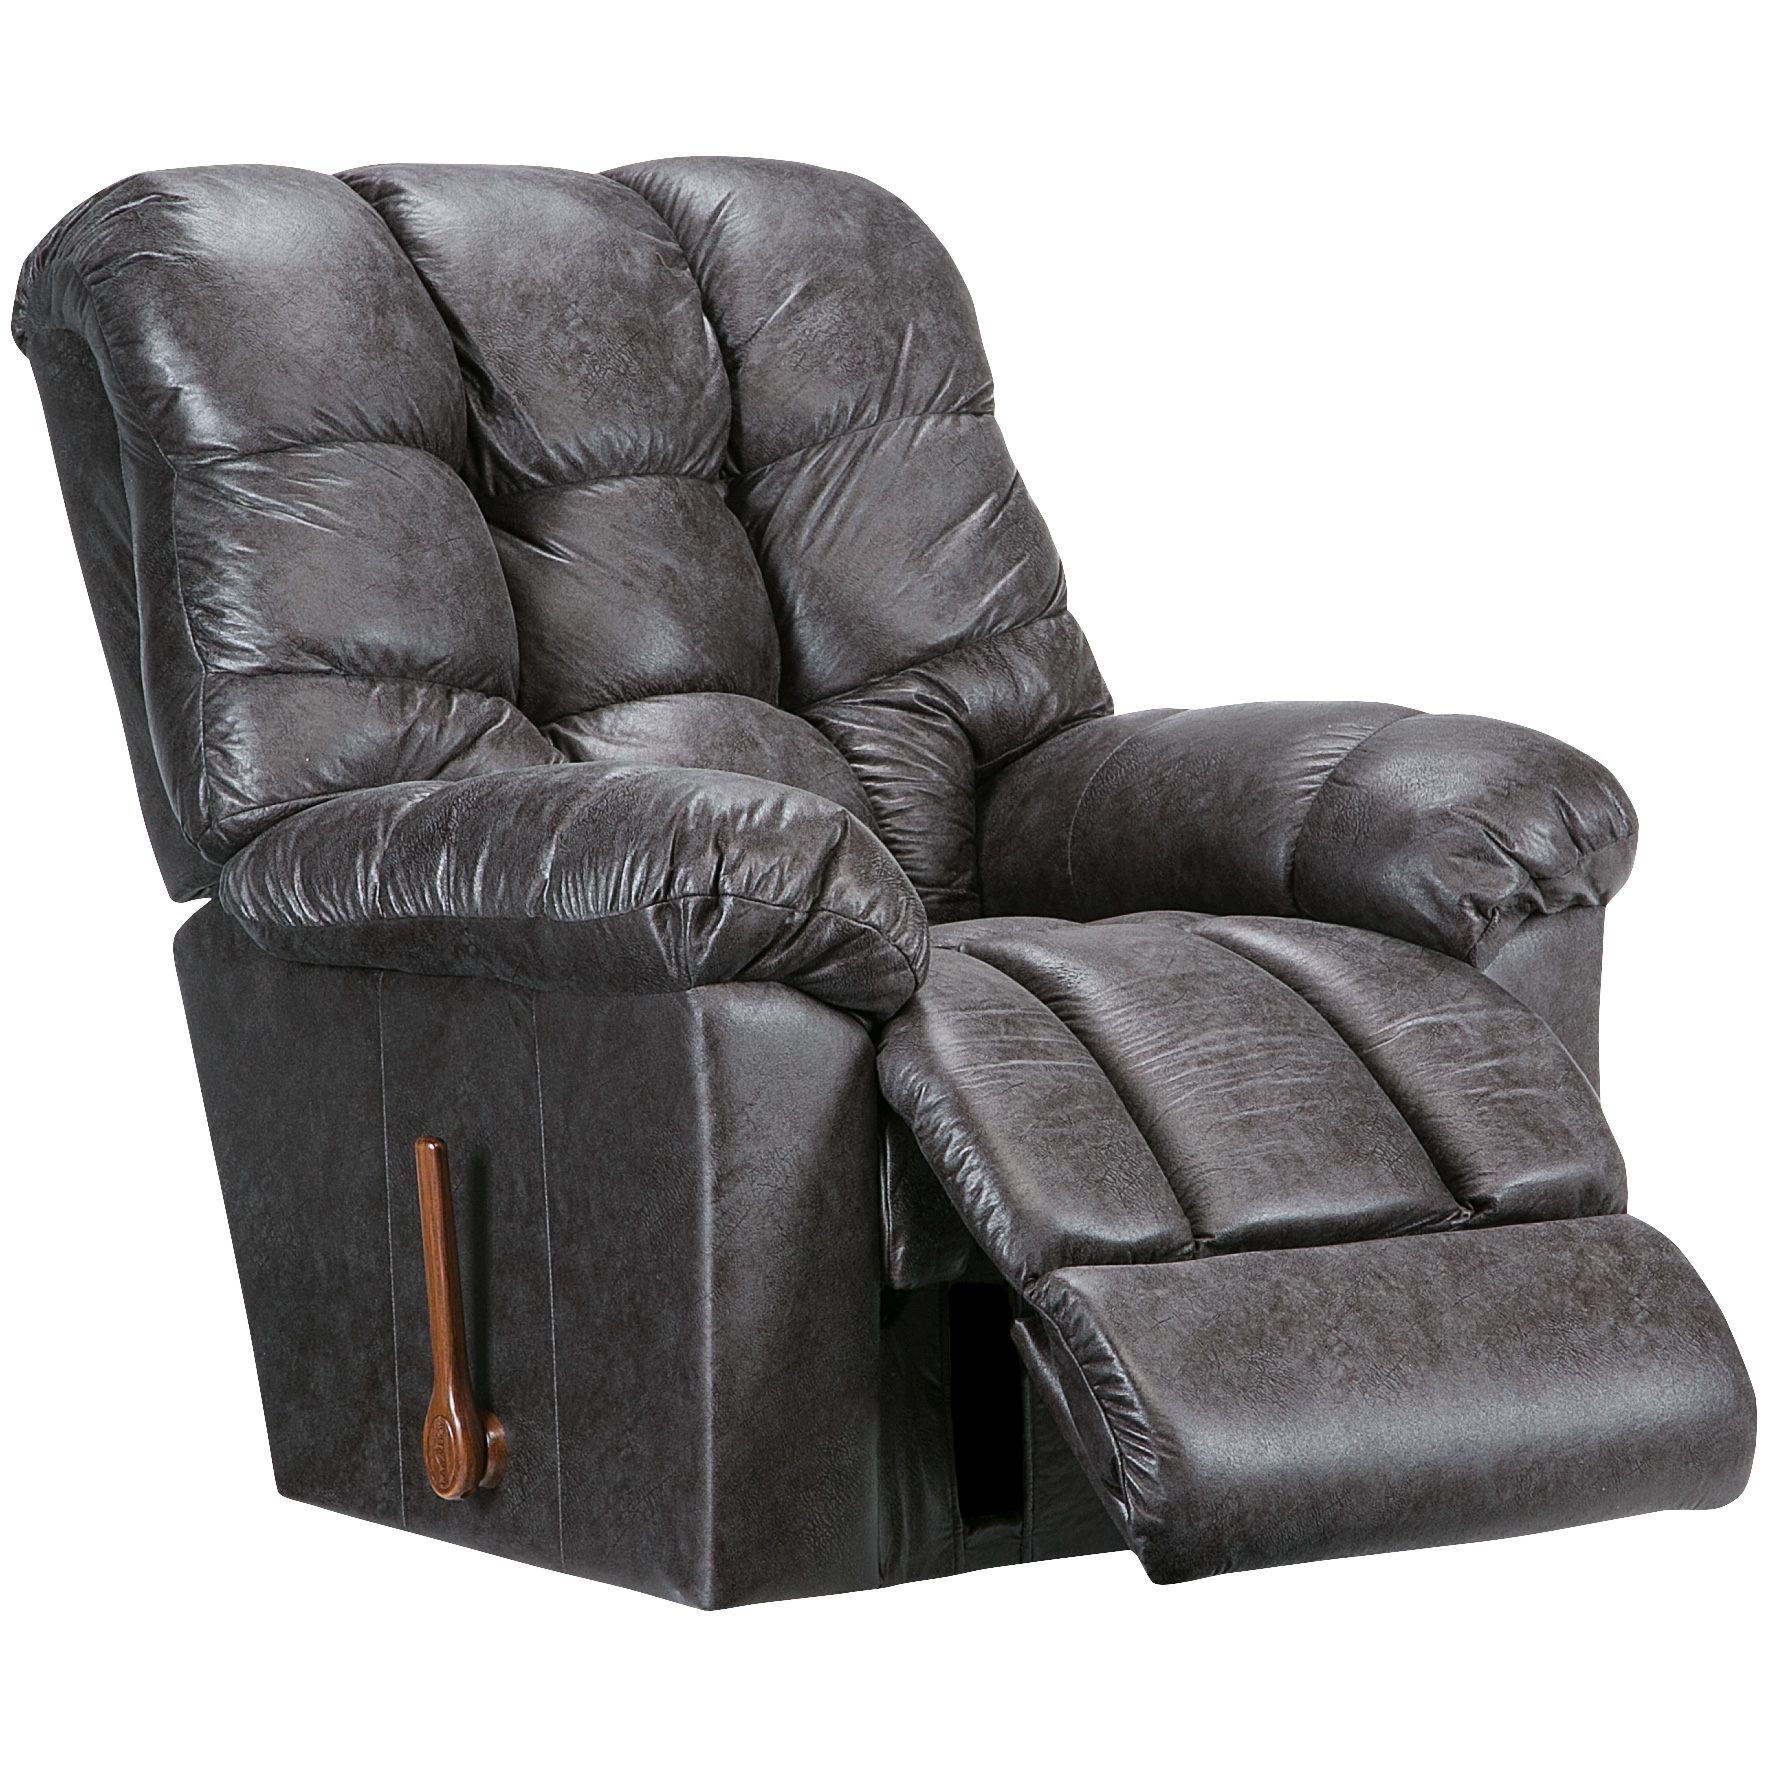 La-Z-Boy | Gibson Tar Rocker Recliner Chair